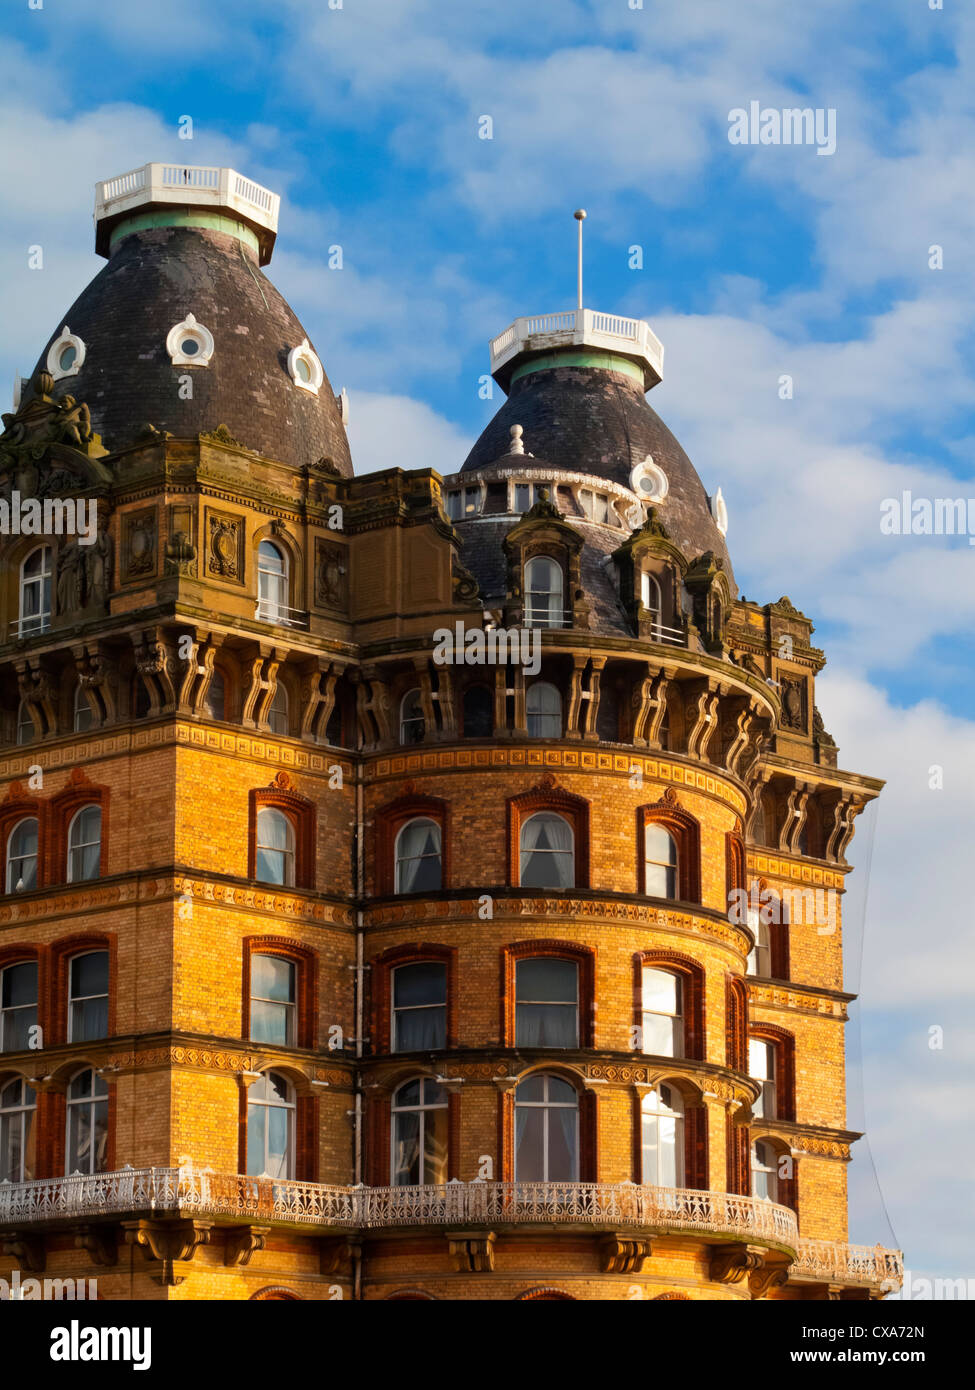 The Grand Hotel in Scarborough North Yorkshire England UK built 1867 designed by Cuthbert Brodrick now owned by - Stock Image